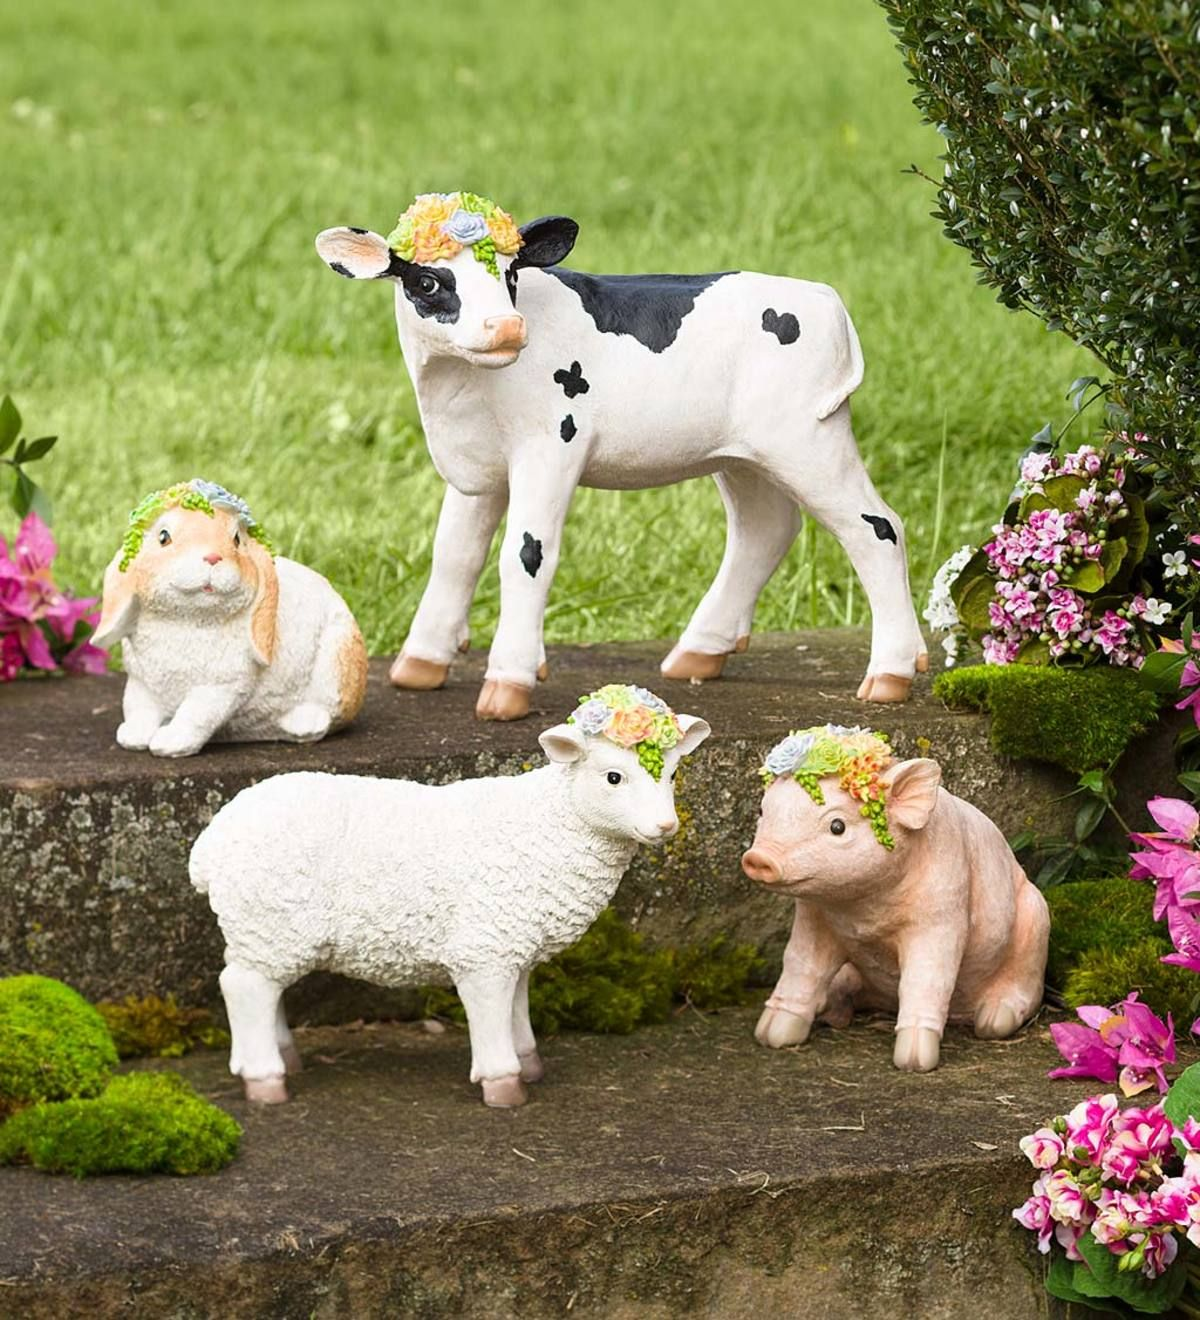 The perfect addition to your flower bed, garden or home